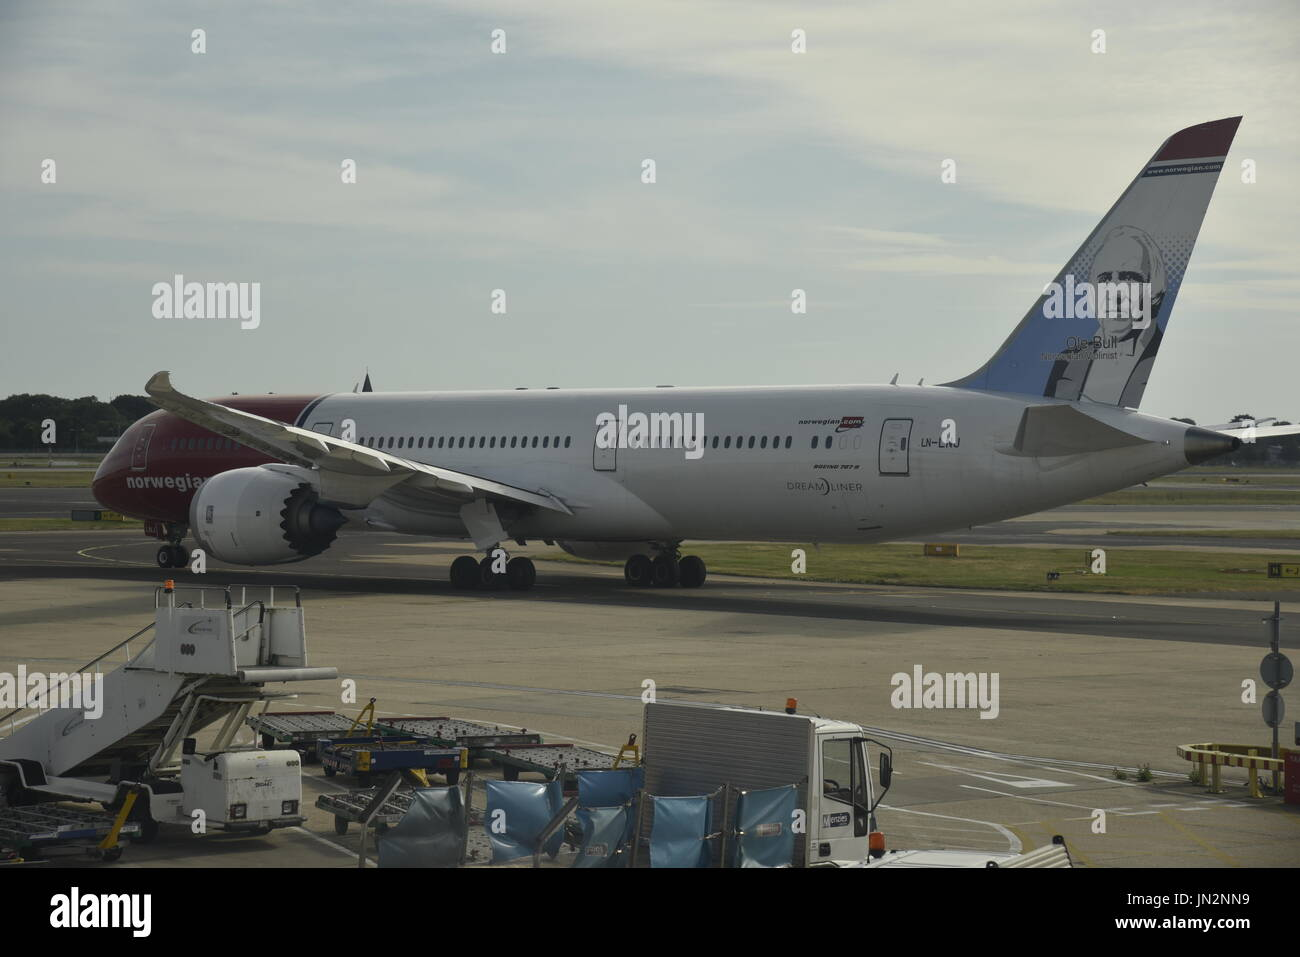 Norwegian Airlines Boeing 787 Dreamliner at London Gatwick Airport Crawley Sussex England UK - Stock Image